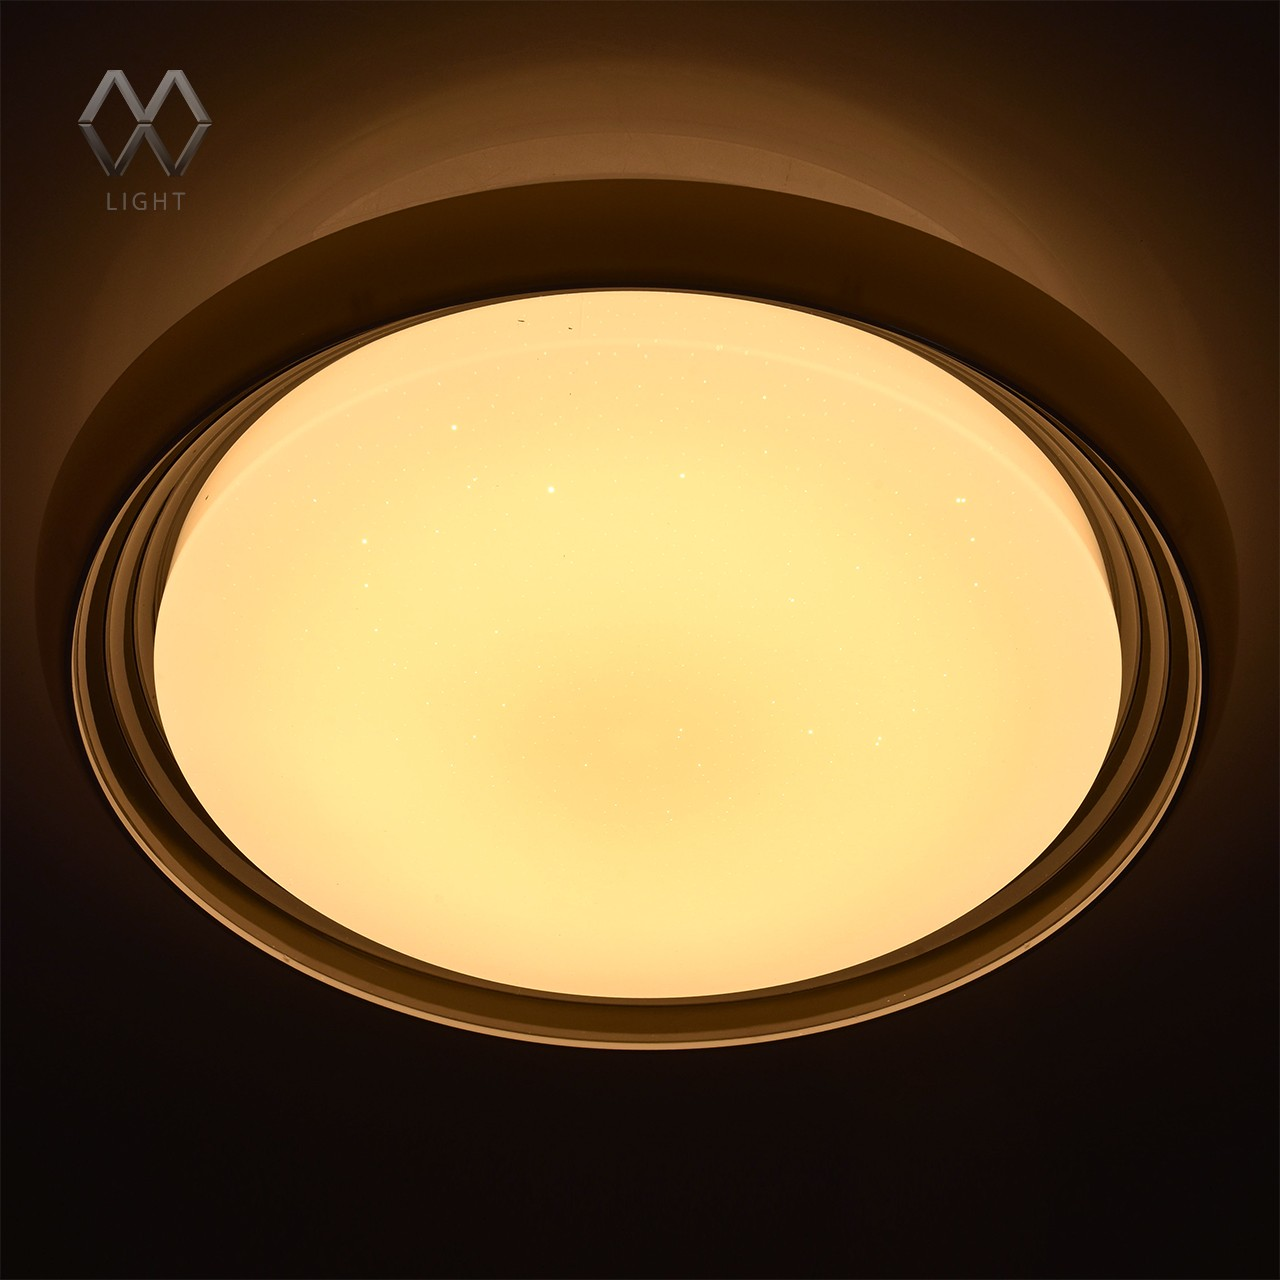 Ривз (пульт) 50W LED MW-Light, арт: 674011901